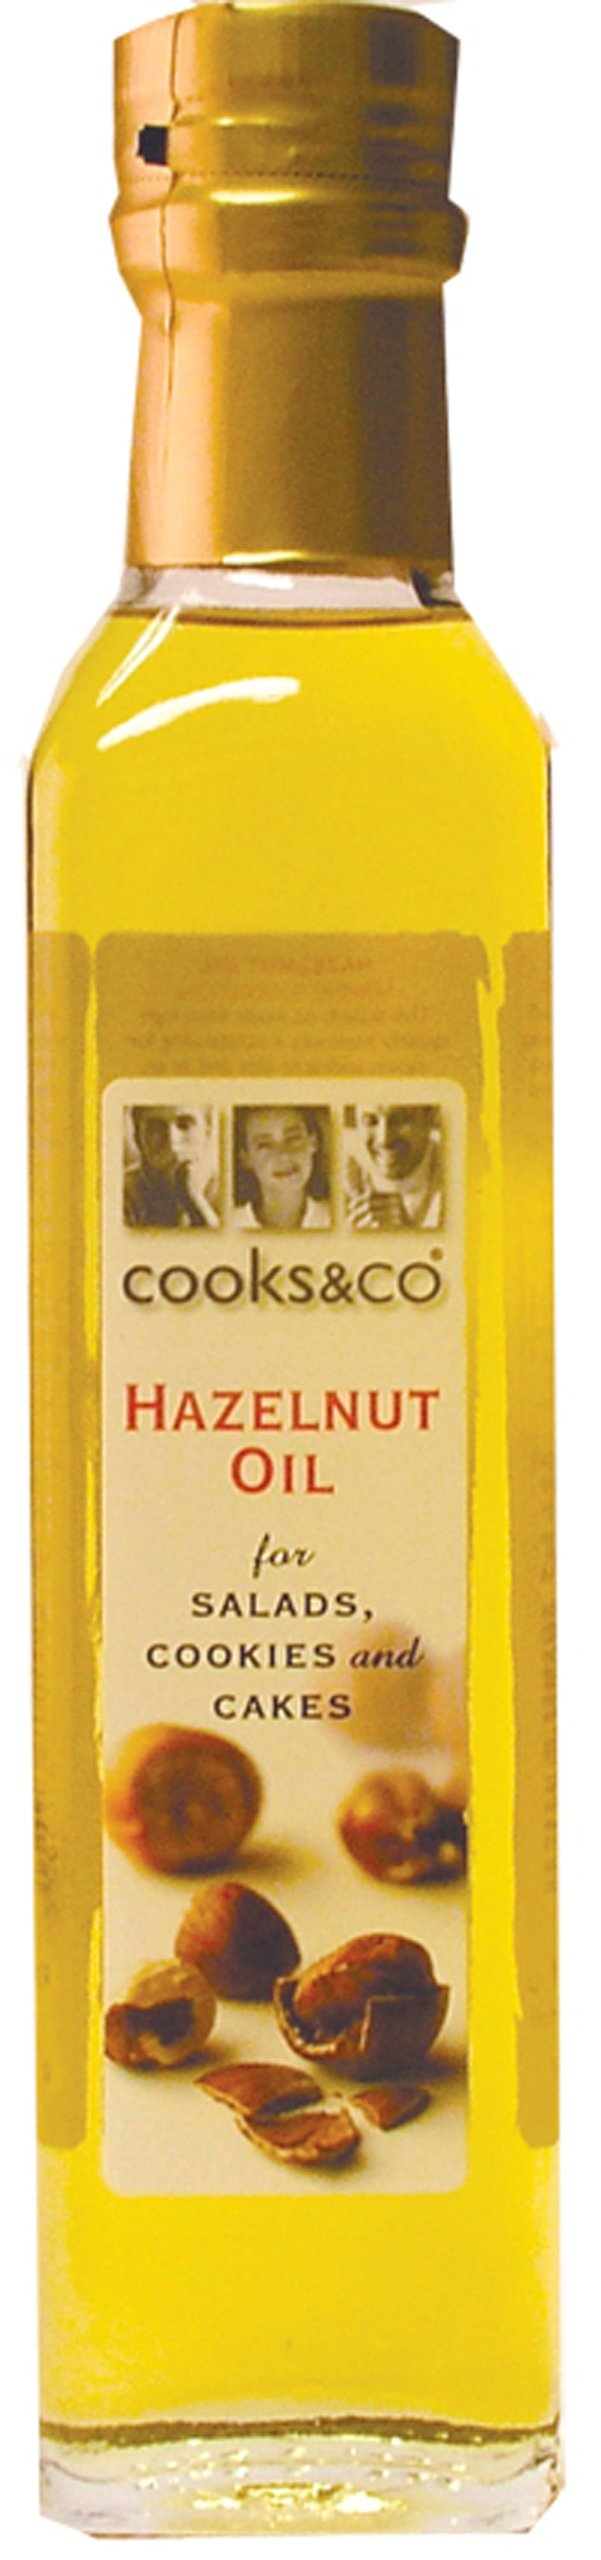 Cooks & Co Hazelnut Oil (250ml) - Pack of 6 by cooks